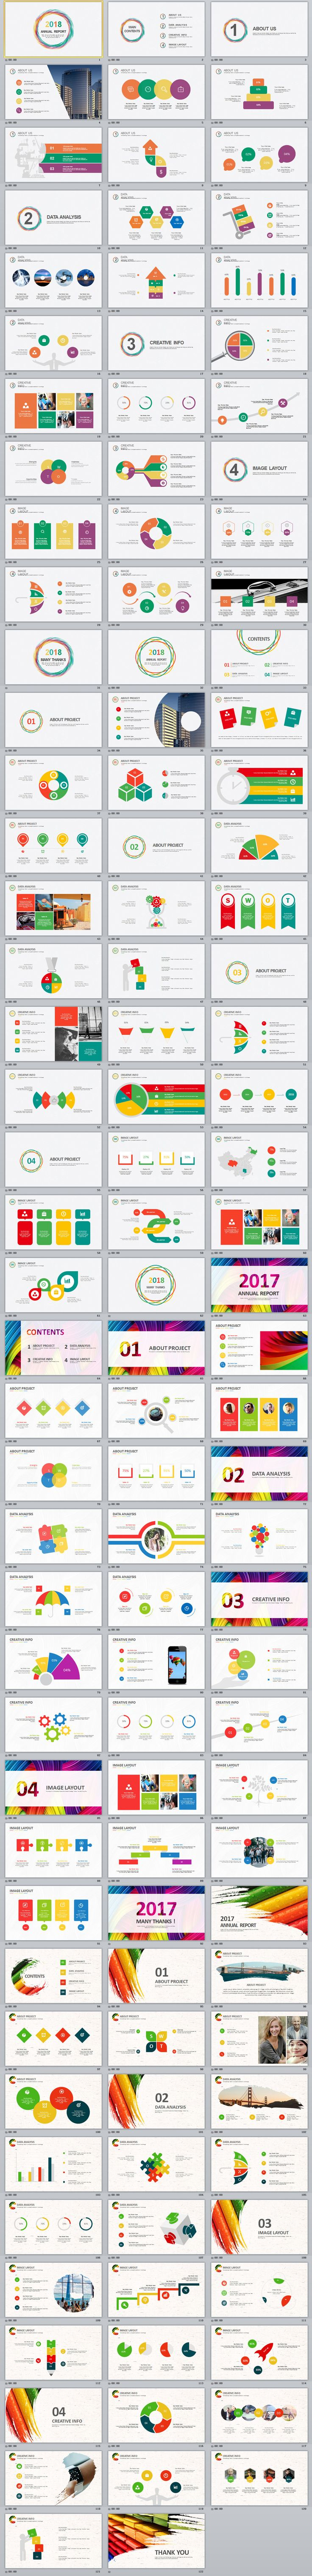 117 best powerpoint and graphic design images on pinterest 4 in 1 red business annual report powerpoint templates on behance powerpoint templates toneelgroepblik Image collections